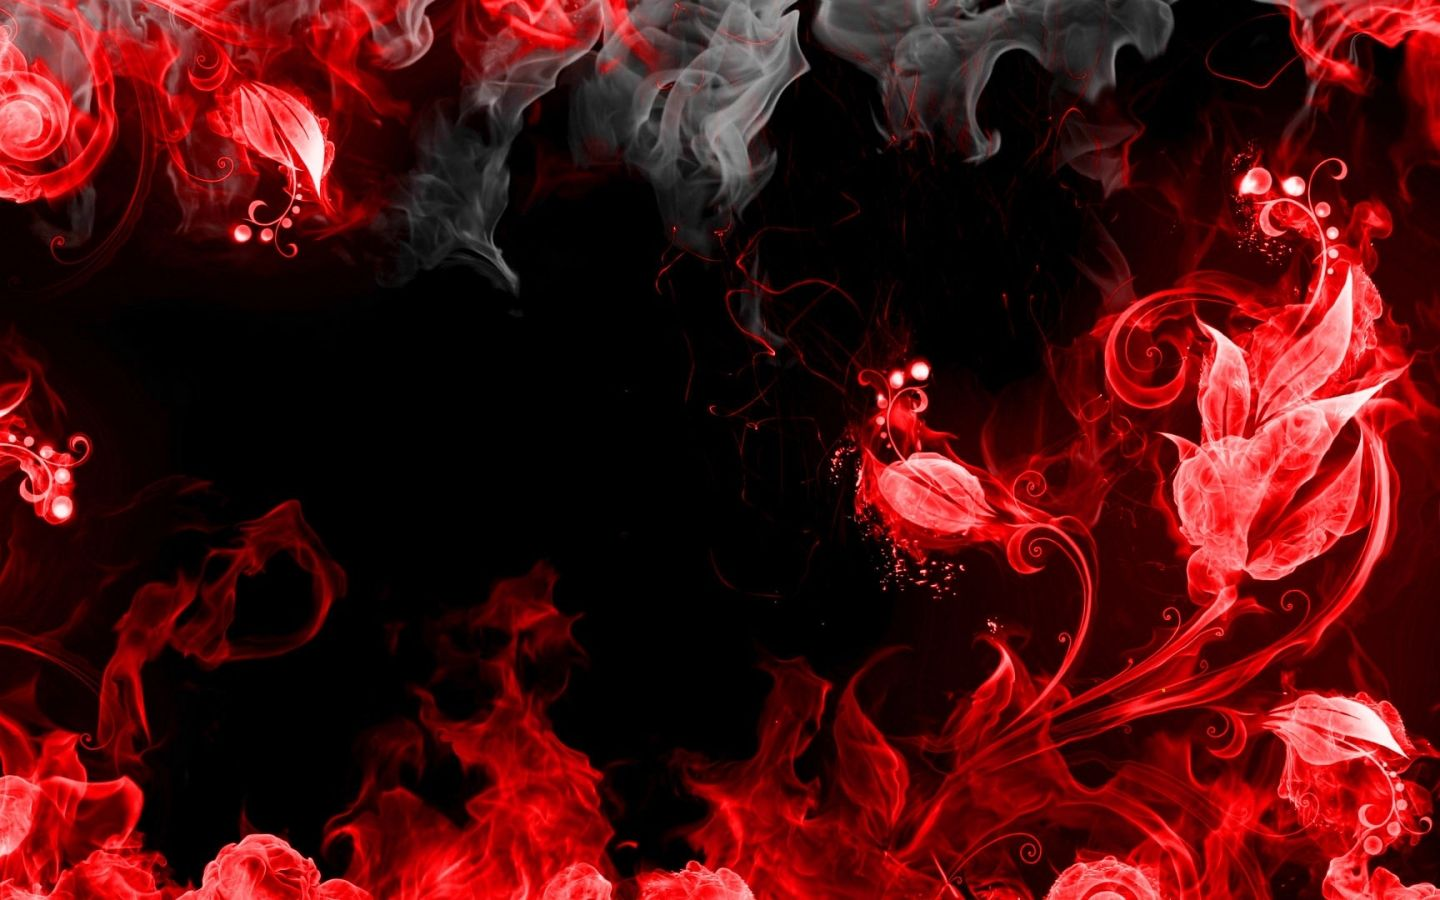 Abstract red black wallpaper pinterest red - Black red abstract wallpaper ...